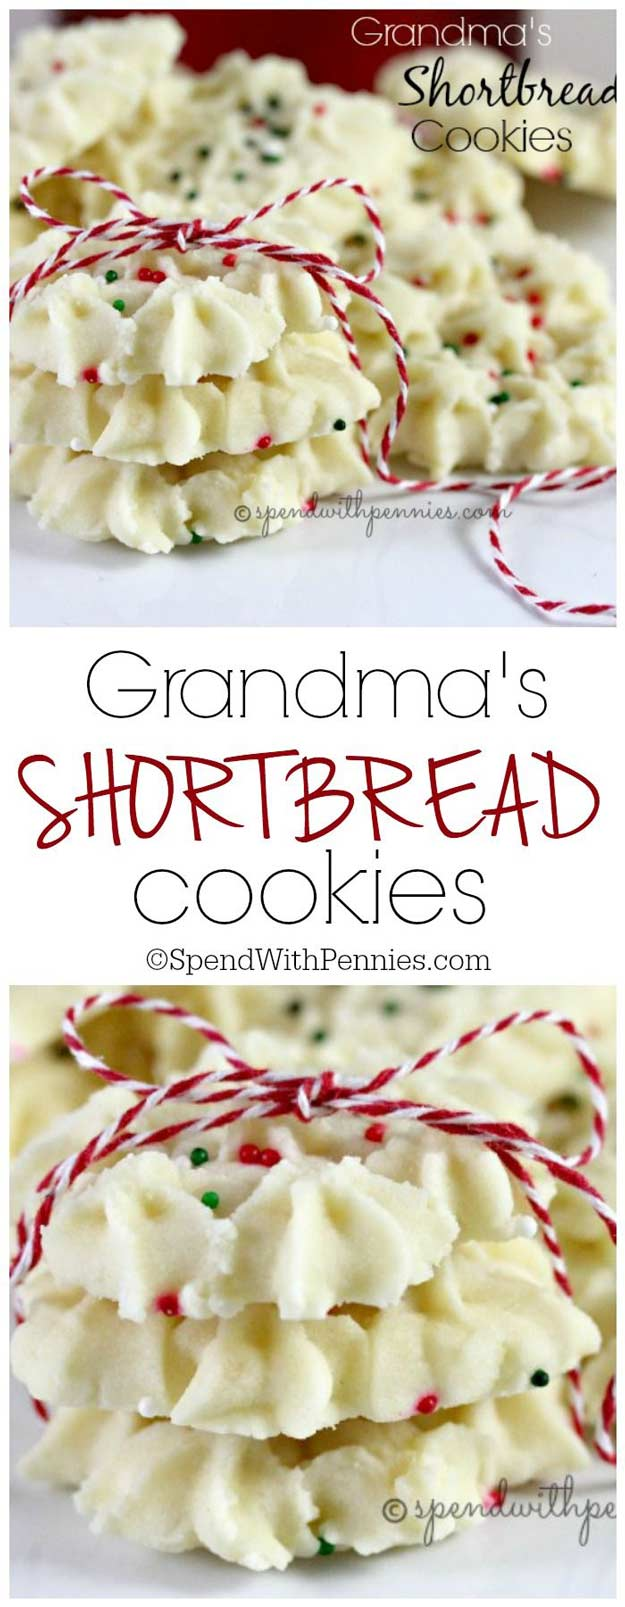 Grandma's Shortbread Cookies Recipe via Spend With Pennies - The BEST Christmas Cookies, Fudge, Candy, Barks and Brittles Recipes - Favorites for Holiday Treats Gift Plates and Goodies Bags! #chrstmascookies #christmascandy #christmastreats #holidaydesserts #holidayrecipes #christmascandies #holidaygiftplates